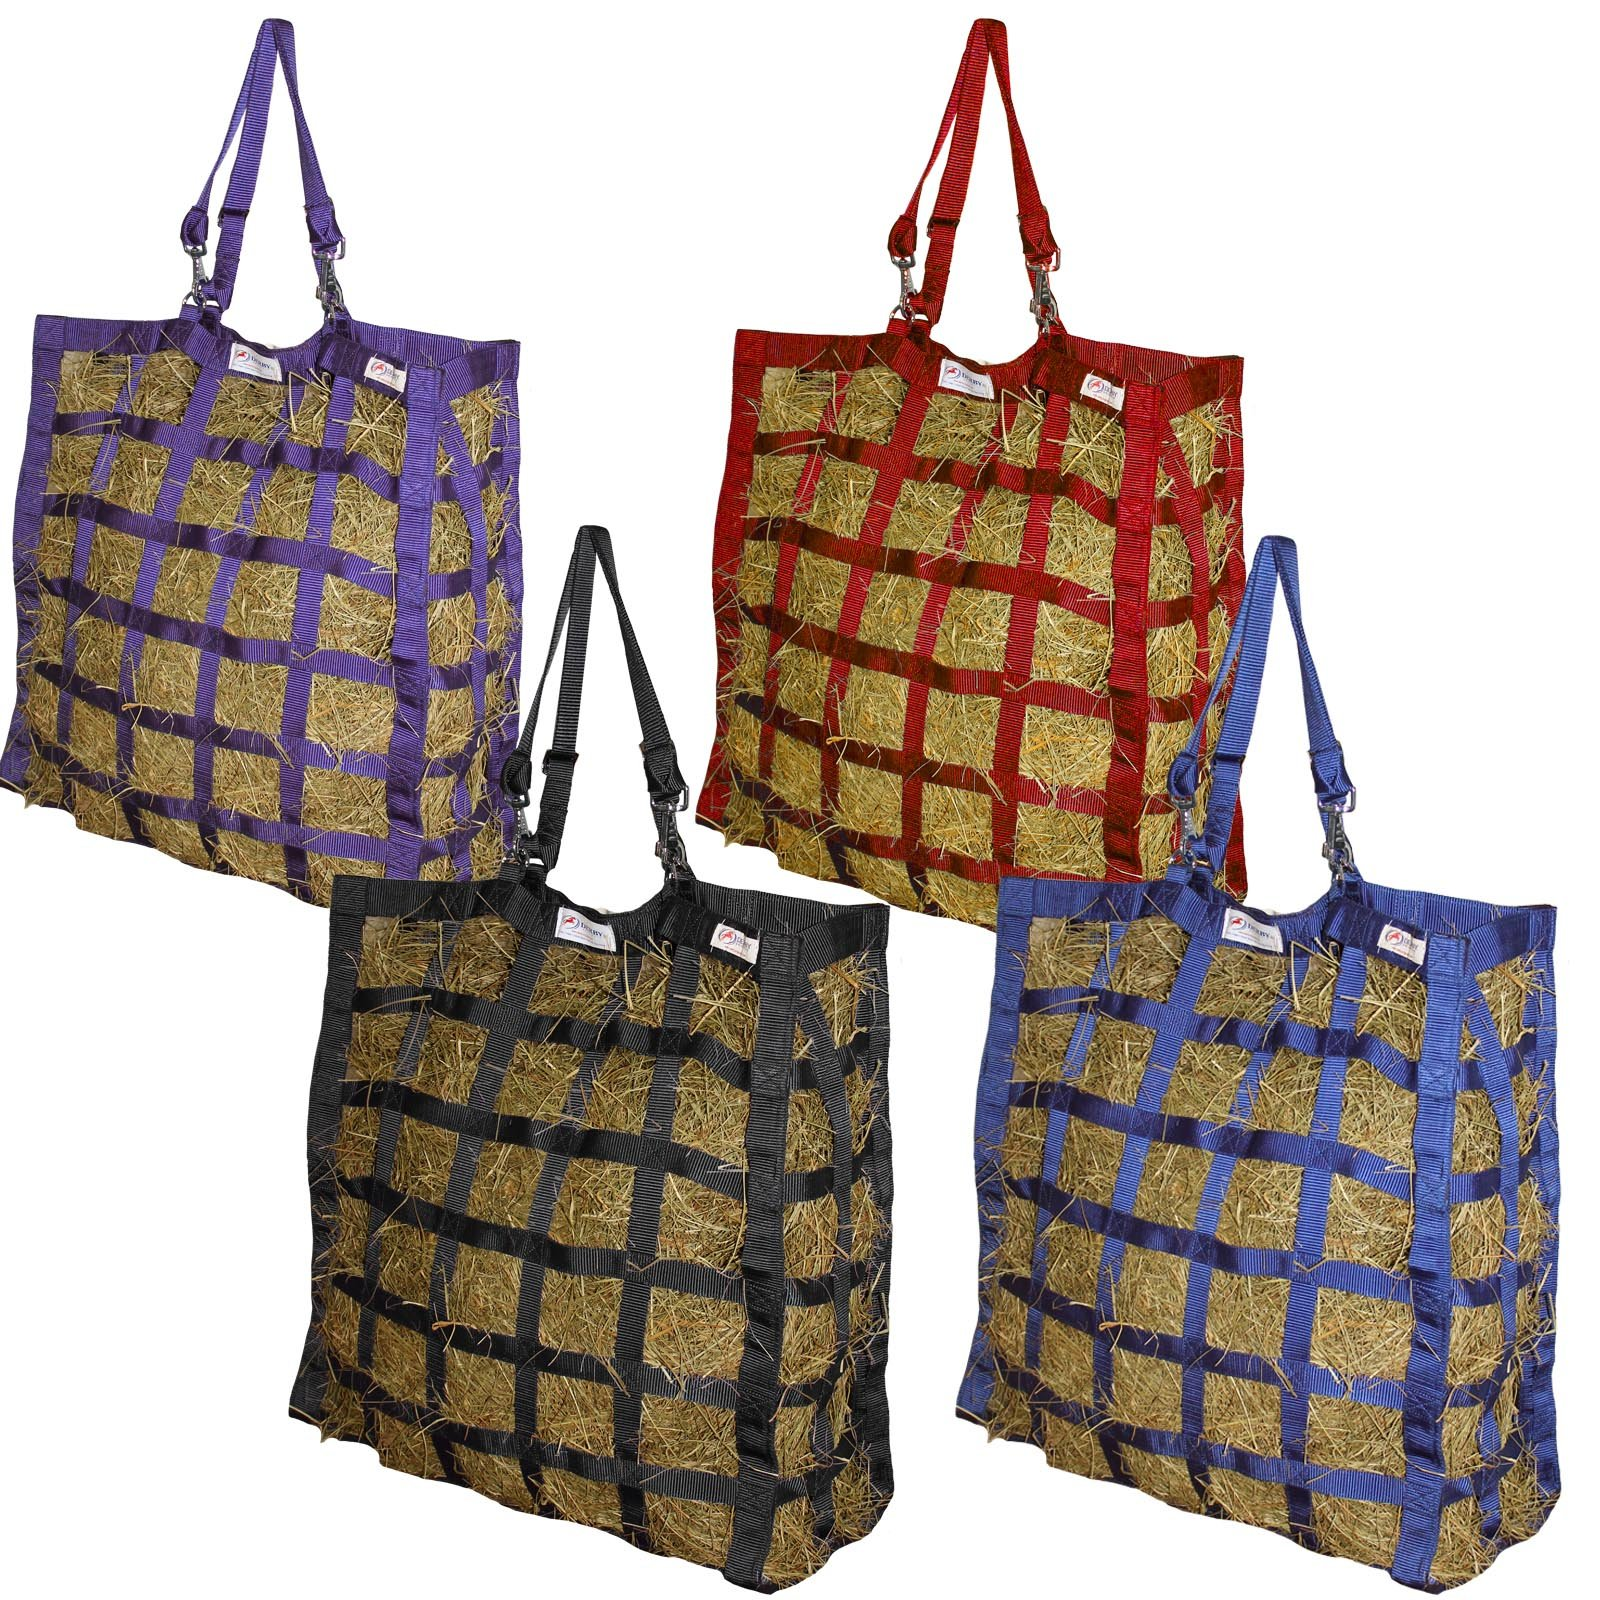 Derby Originals Patented Easy Feed Four Sided Hay Bag with One Year Limited Manufacturer Warranty